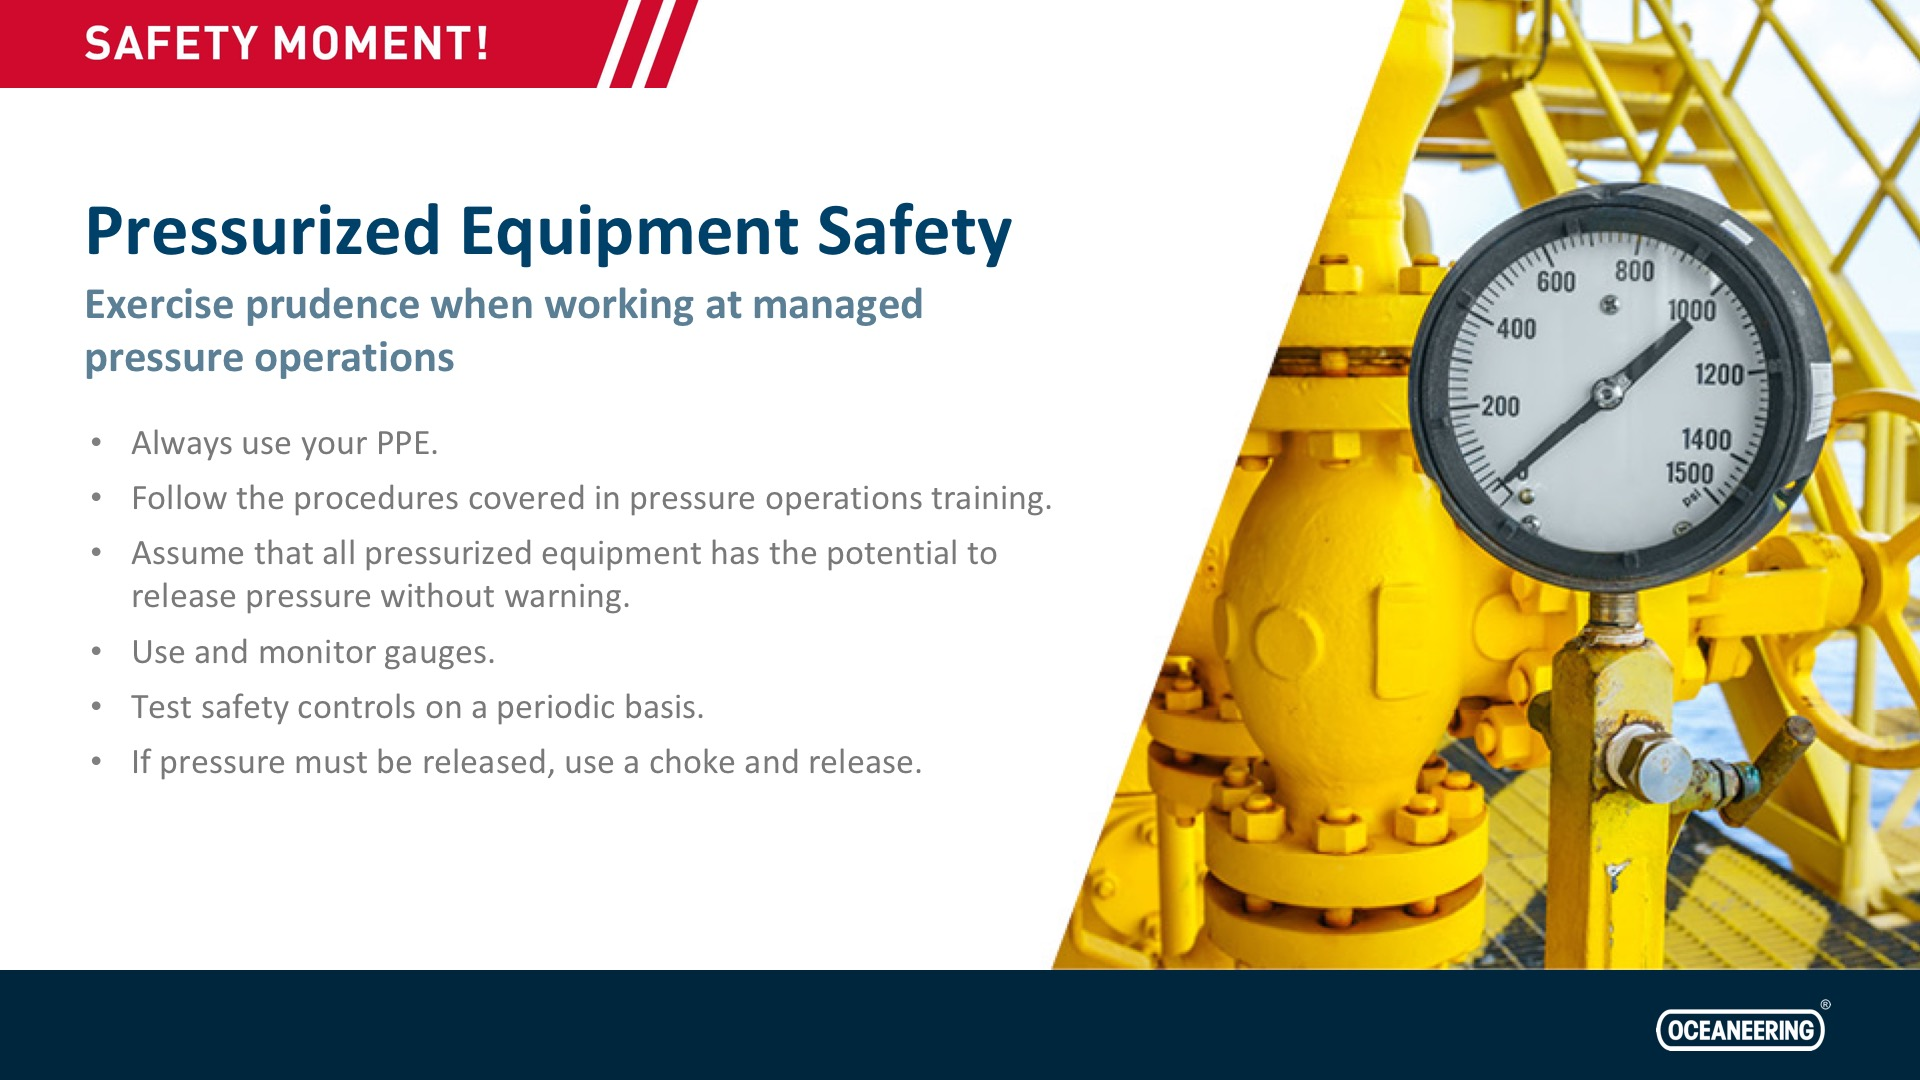 Pressurized Equipment Safety